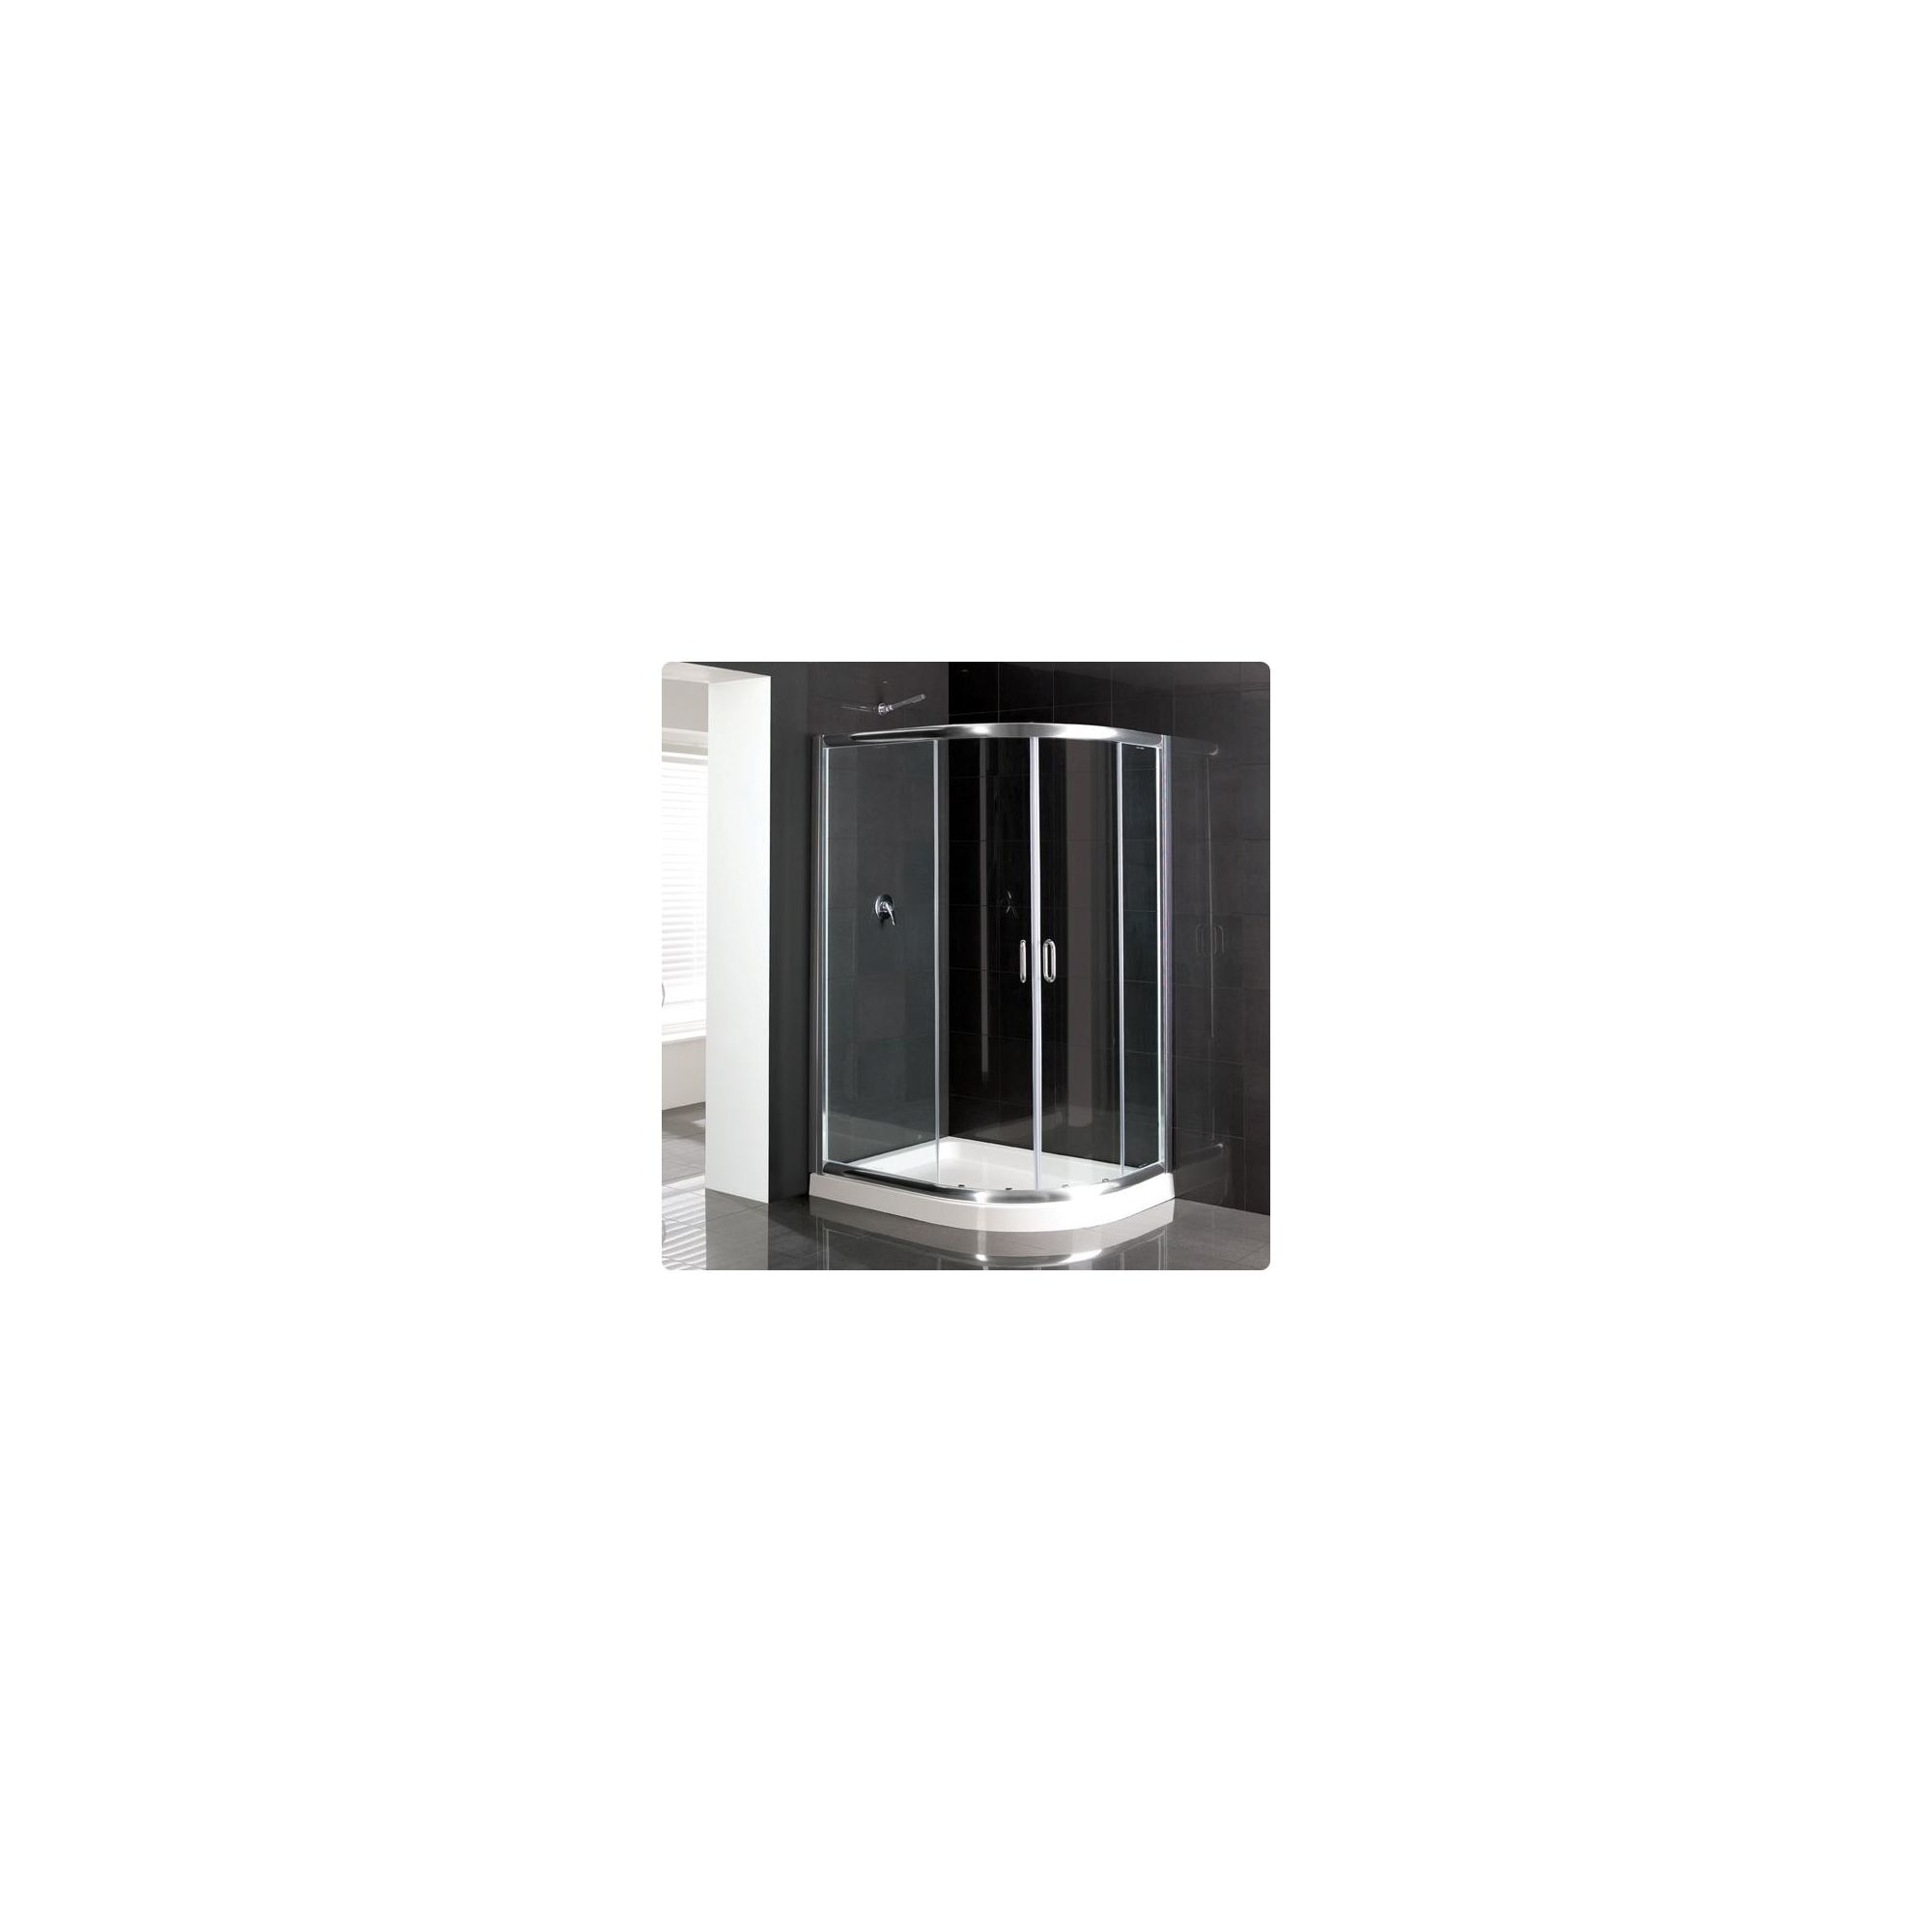 Duchy Elite Silver Offset Quadrant Shower Enclosure (Complete with Tray) 900mm x 760mm, 6mm Glass at Tesco Direct